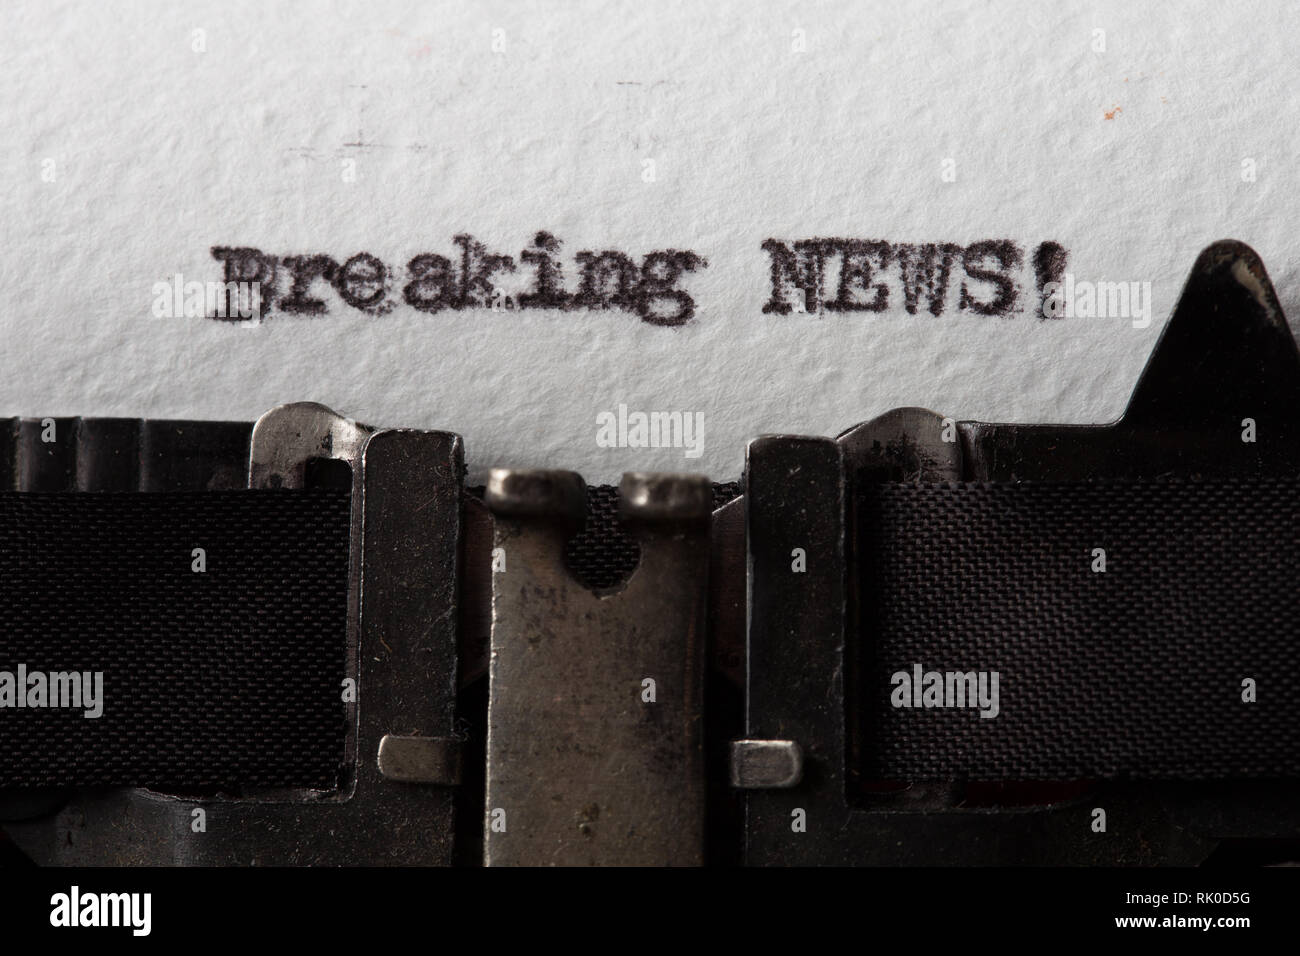 breaking news - text message on the typewriter close-up - Stock Image